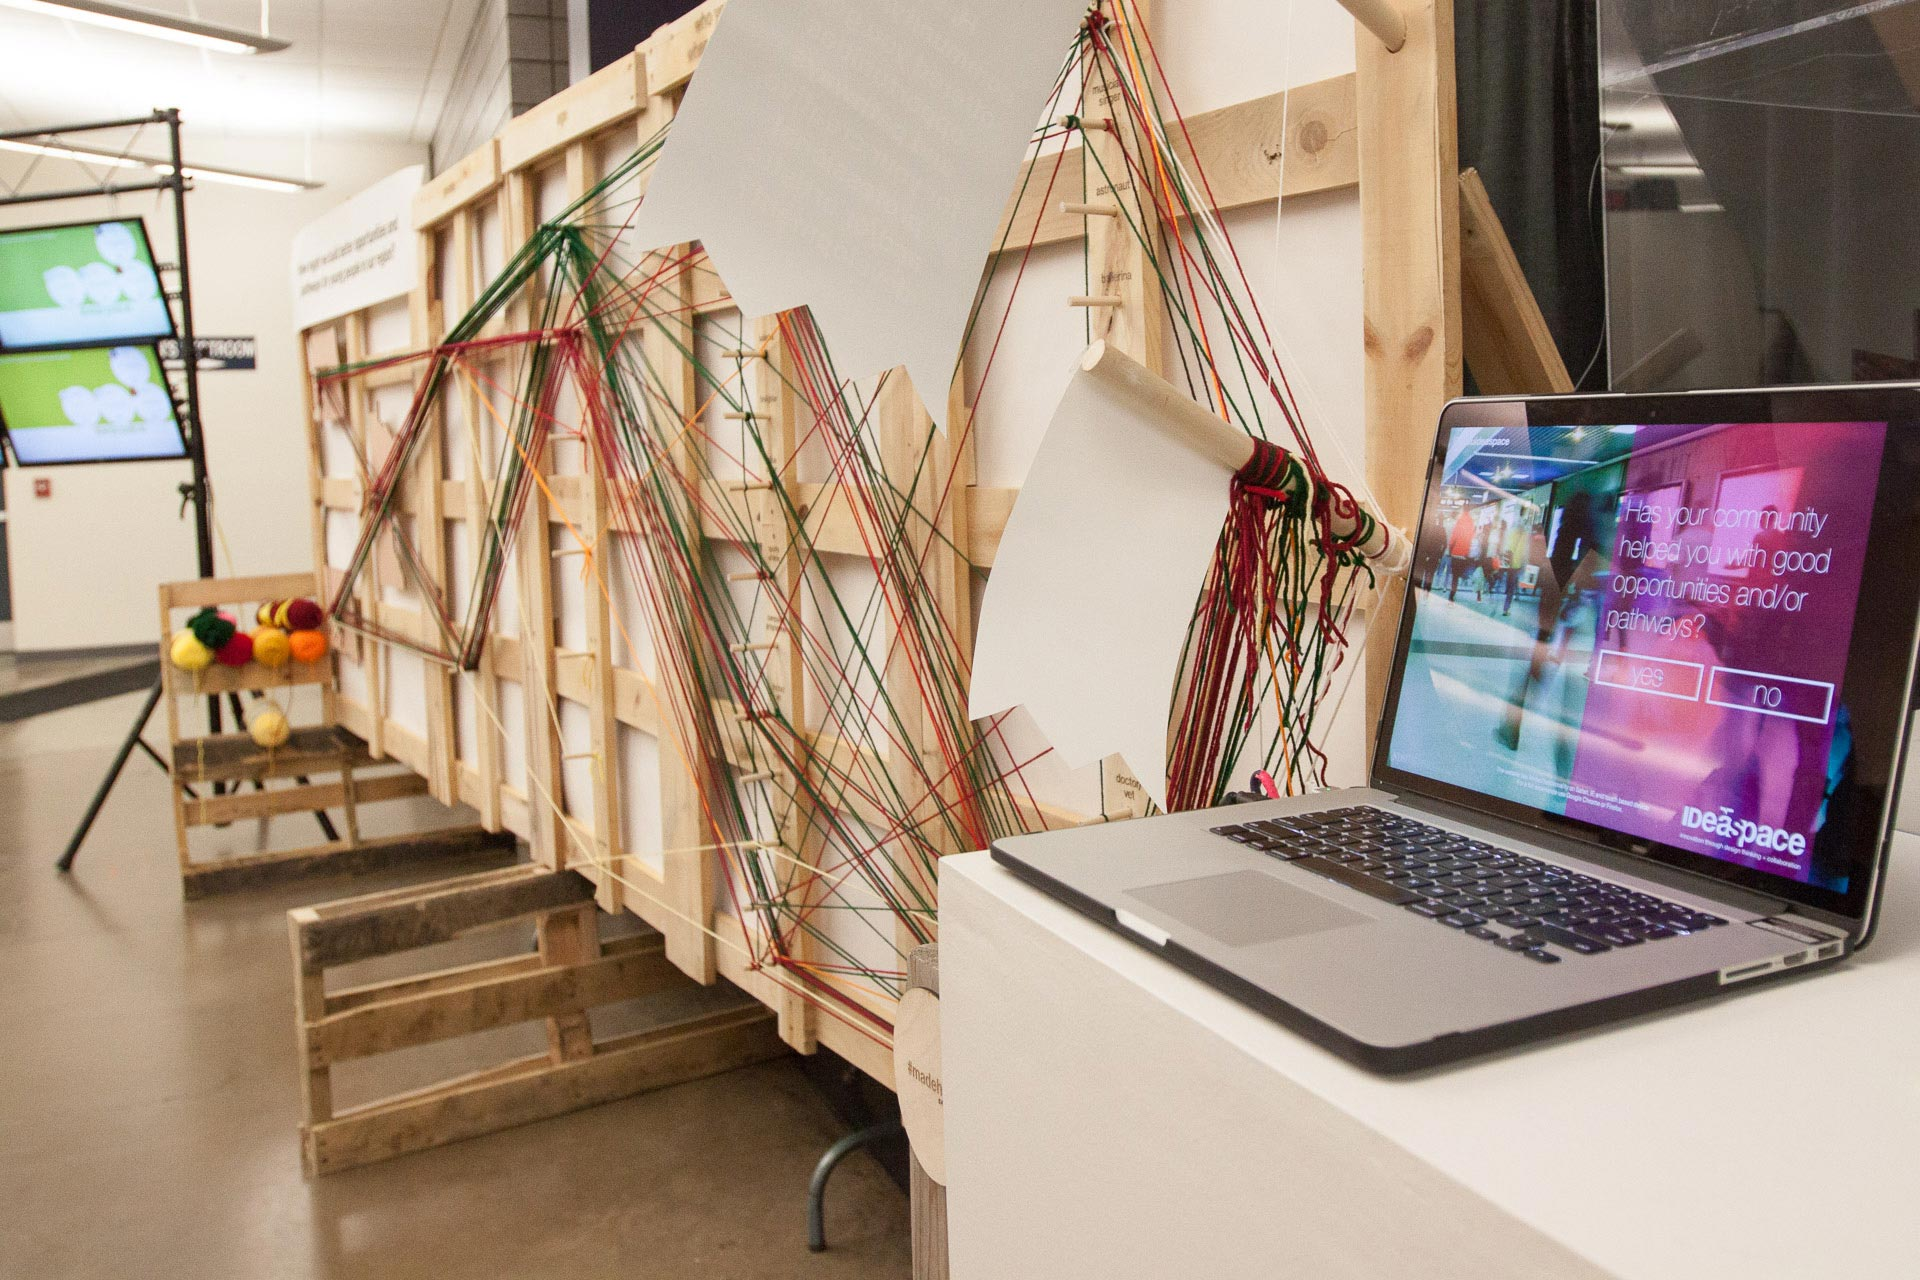 Laptop on white table in front of wood and yarn installation